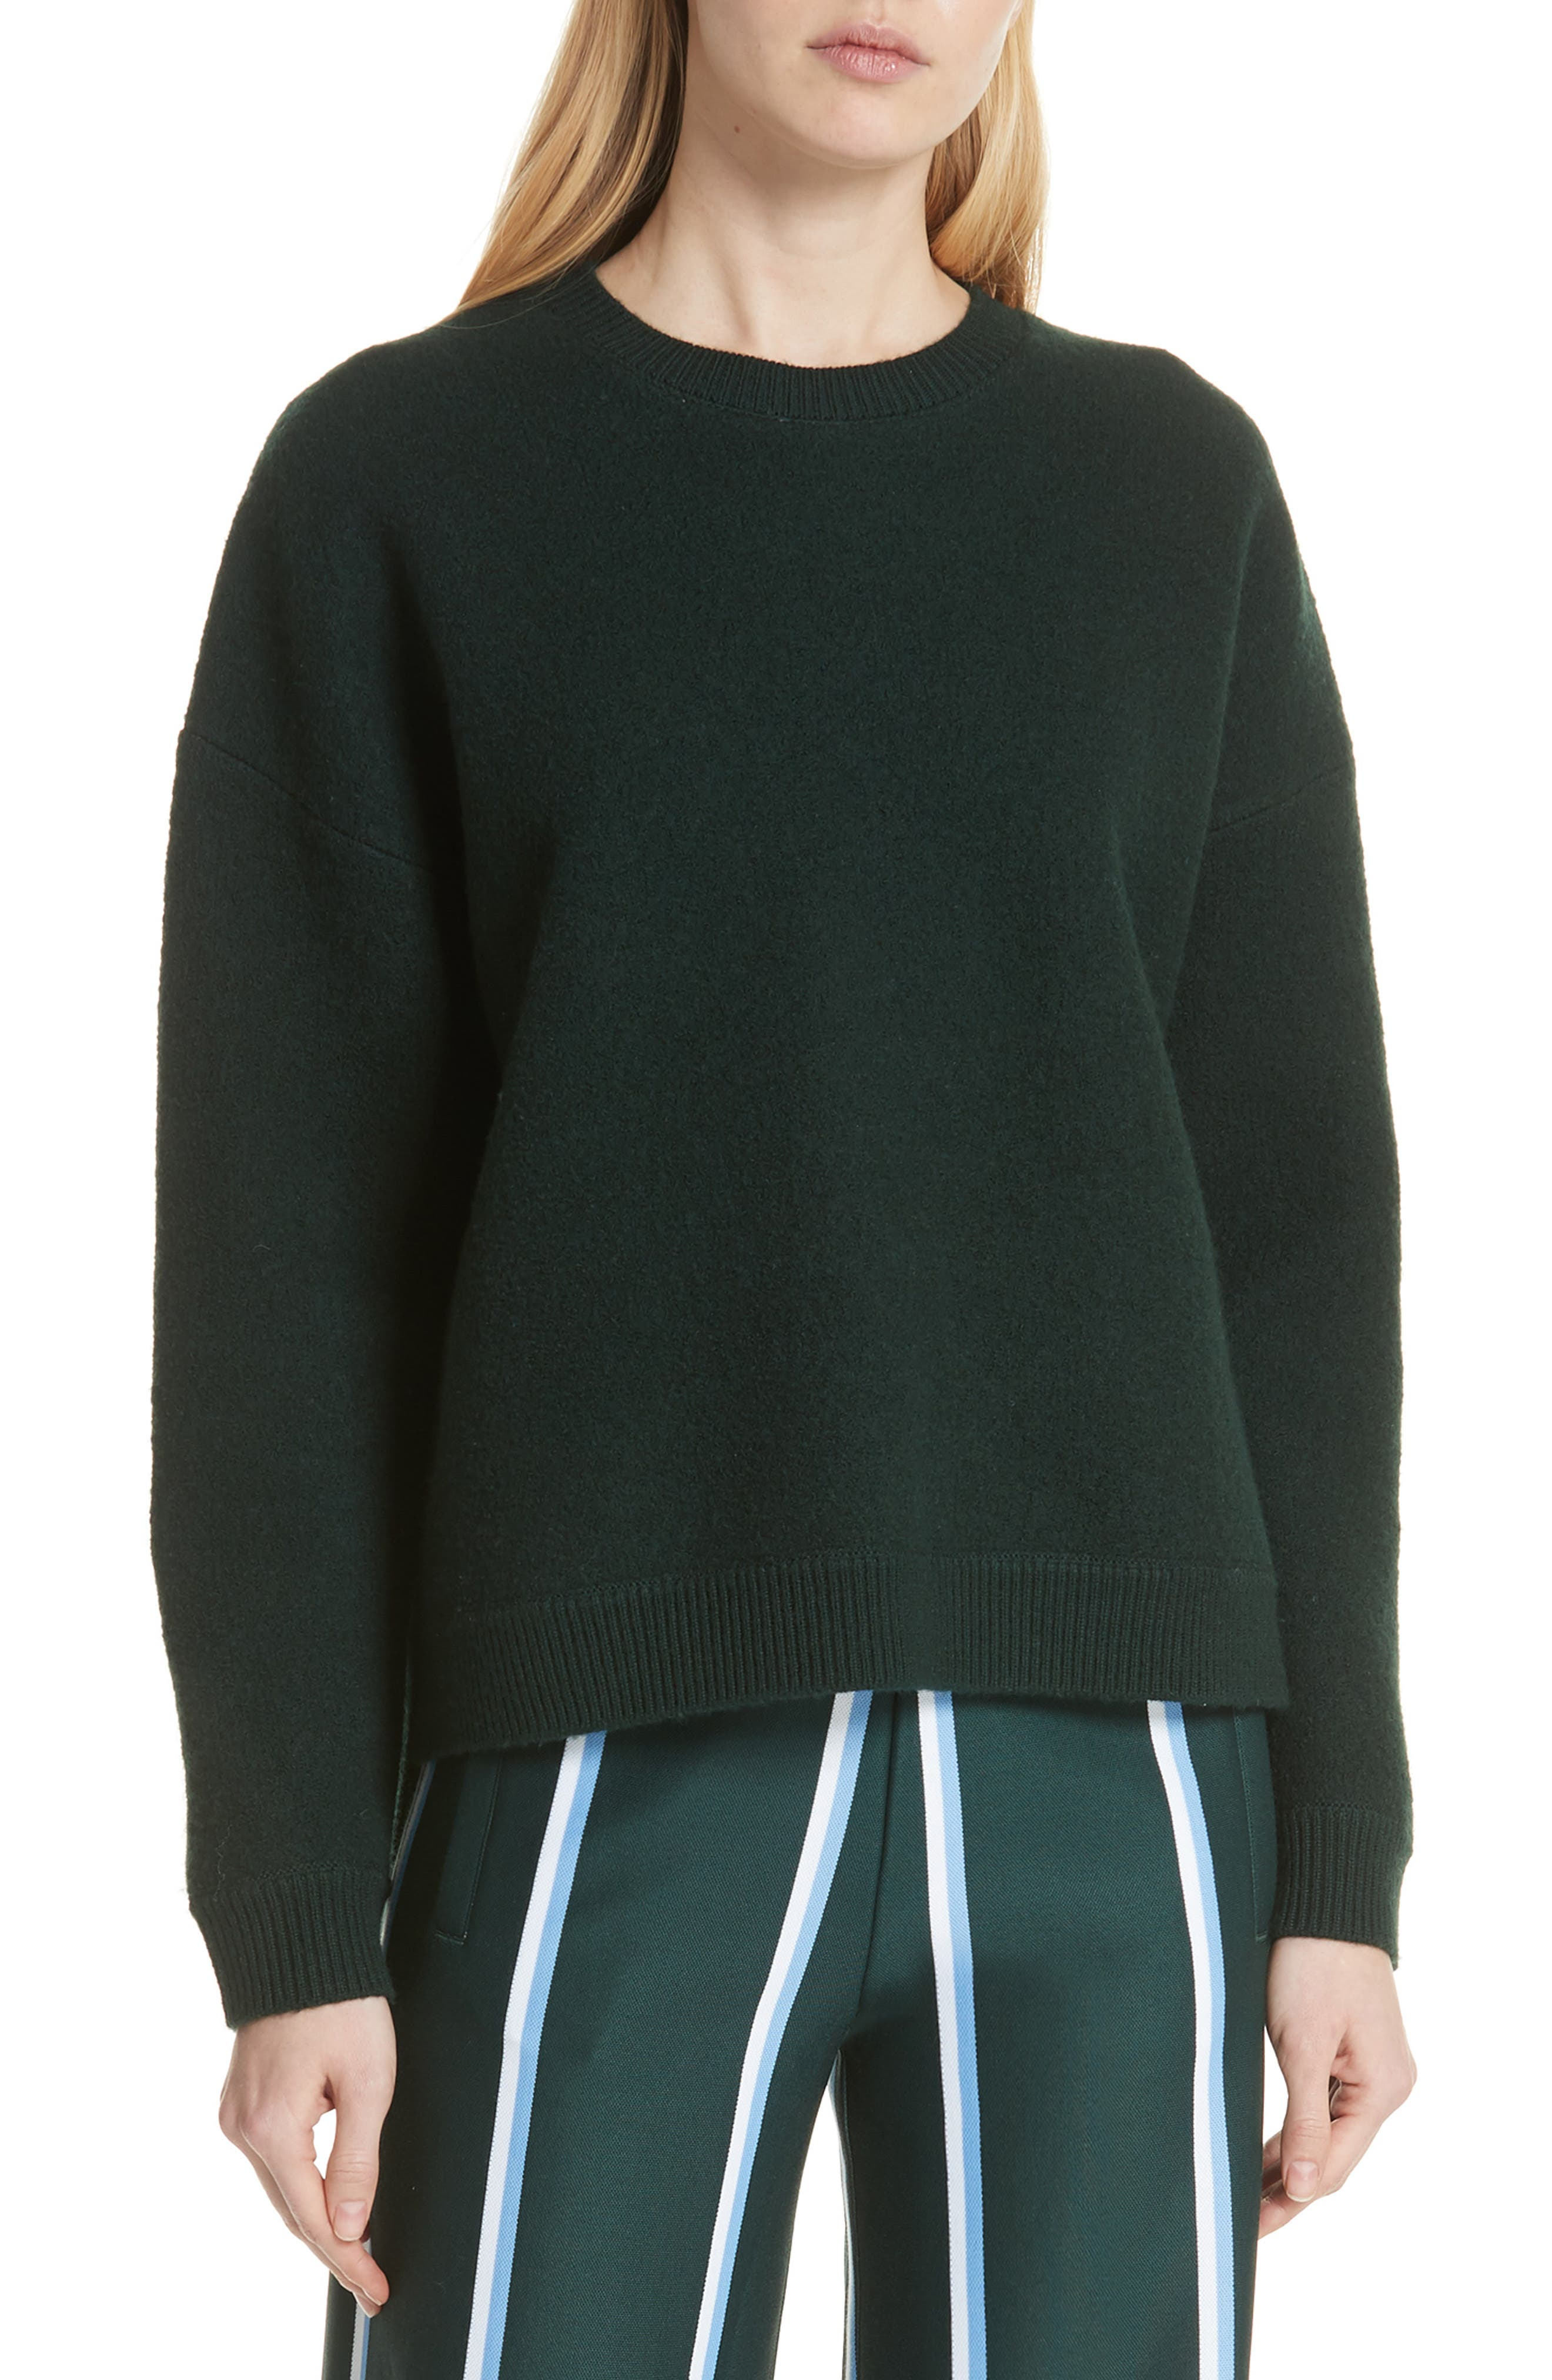 TORY SPORT Droptail Wool Pullover Sweater in Conifer